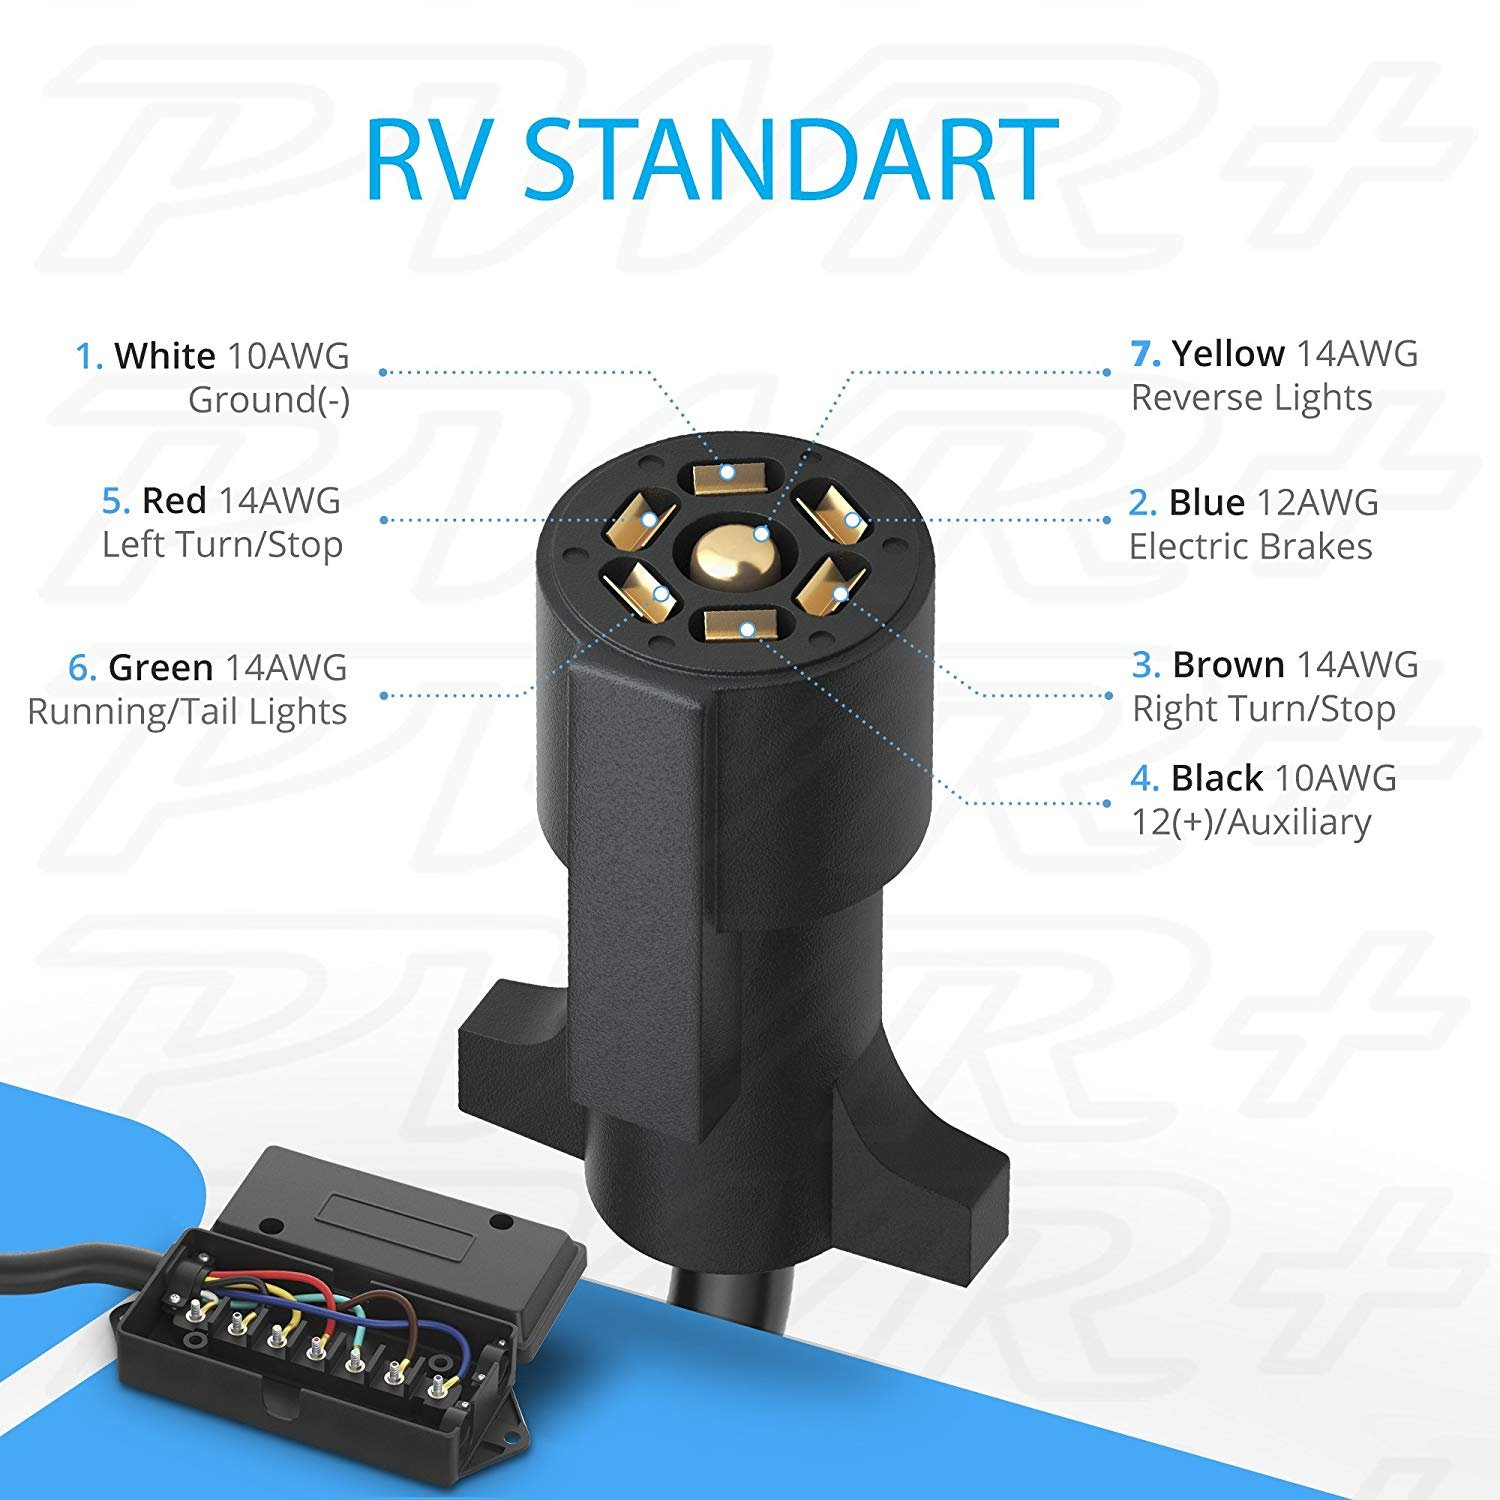 Weatherproof RV Standart !!! Corrosion Resistant 1.8 meters Heavy Duty Cord Double Prongs RV 7 Pin Gang Wire Pole Inline Light Trailer Wiring Harness Cable Long 6 Ft Pwr 7-Pin Trailer Plug Connector 7-Way: with Junction Box